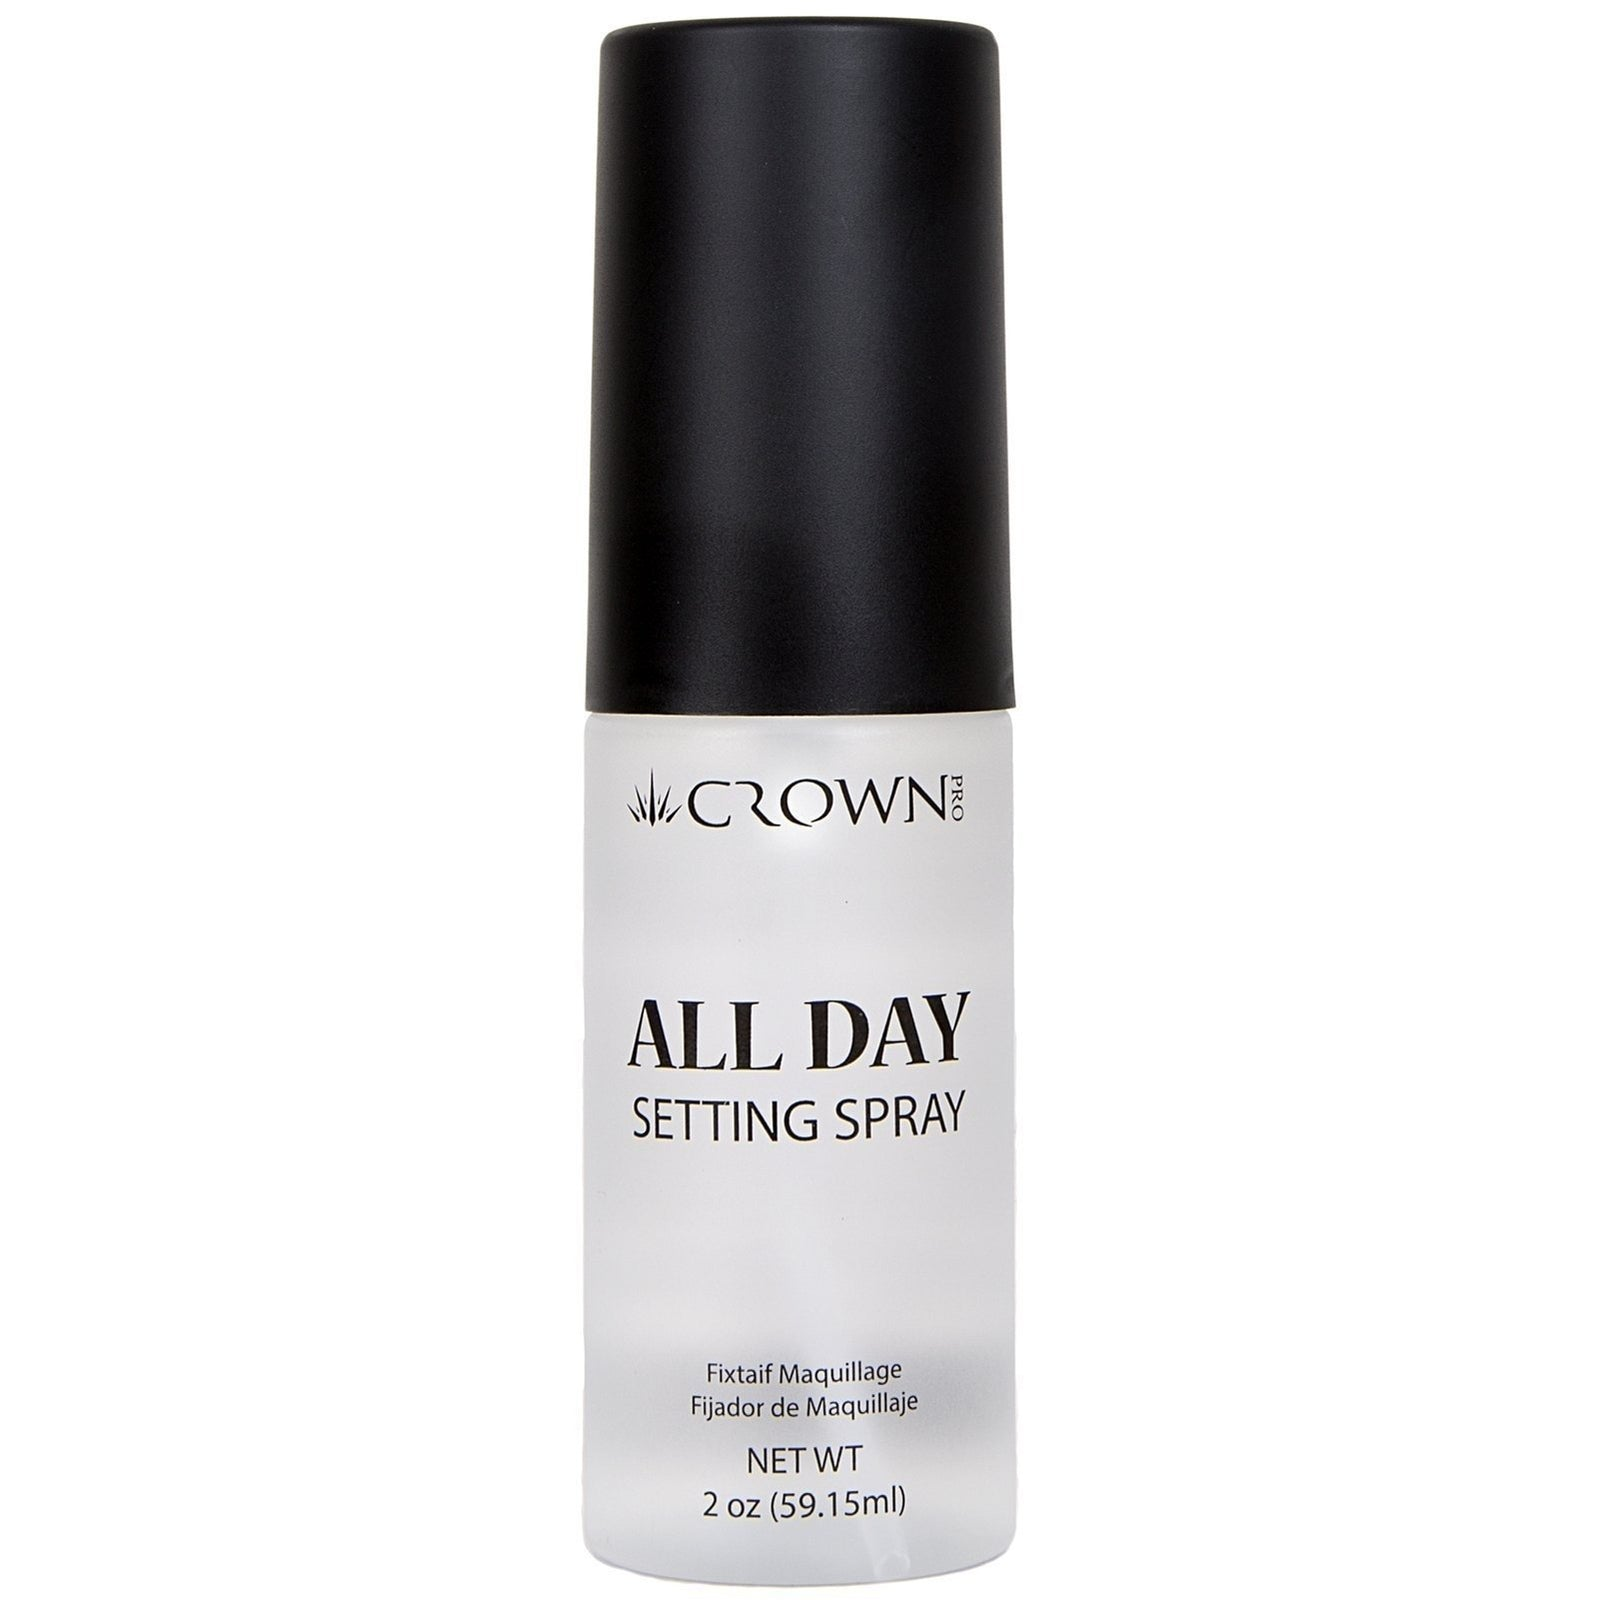 All Day Setting Spray - Crownbrush